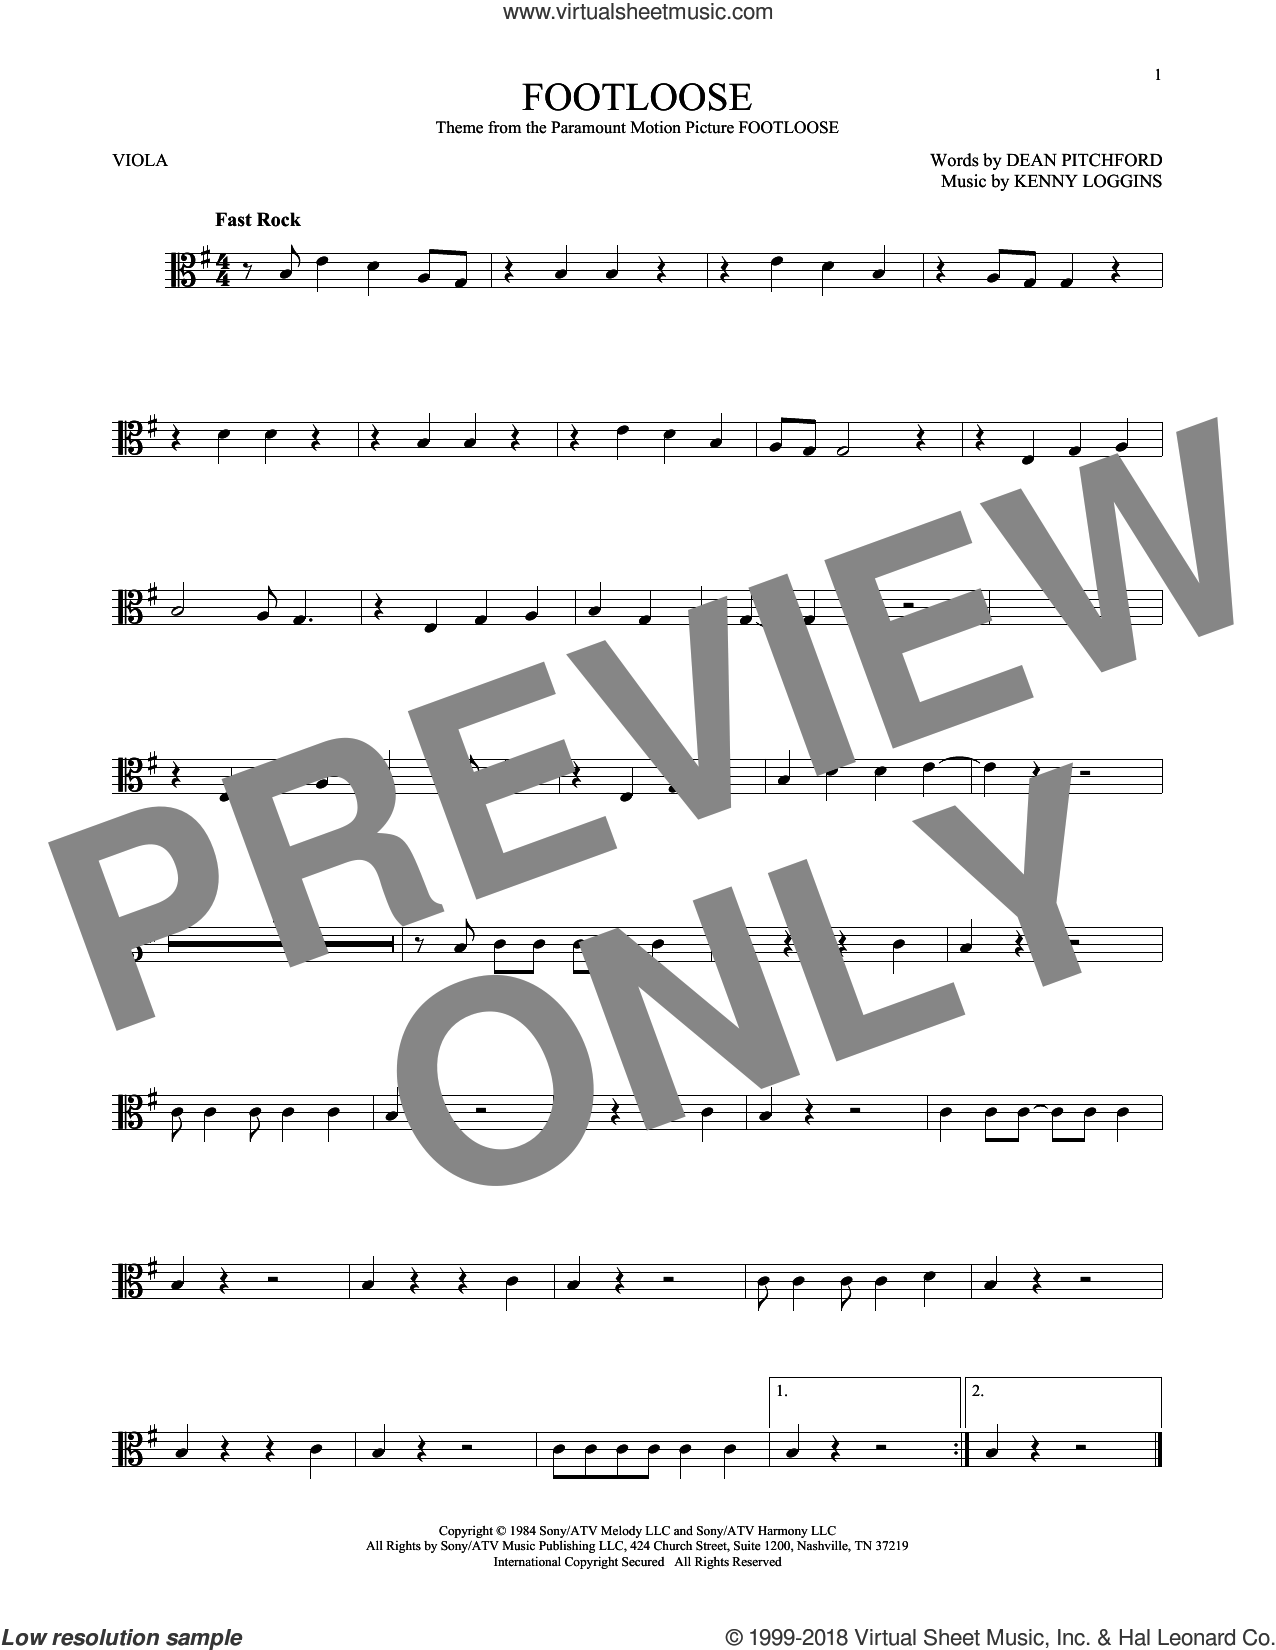 Footloose sheet music for viola solo by Kenny Loggins, Blake Shelton and Dean Pitchford, intermediate skill level